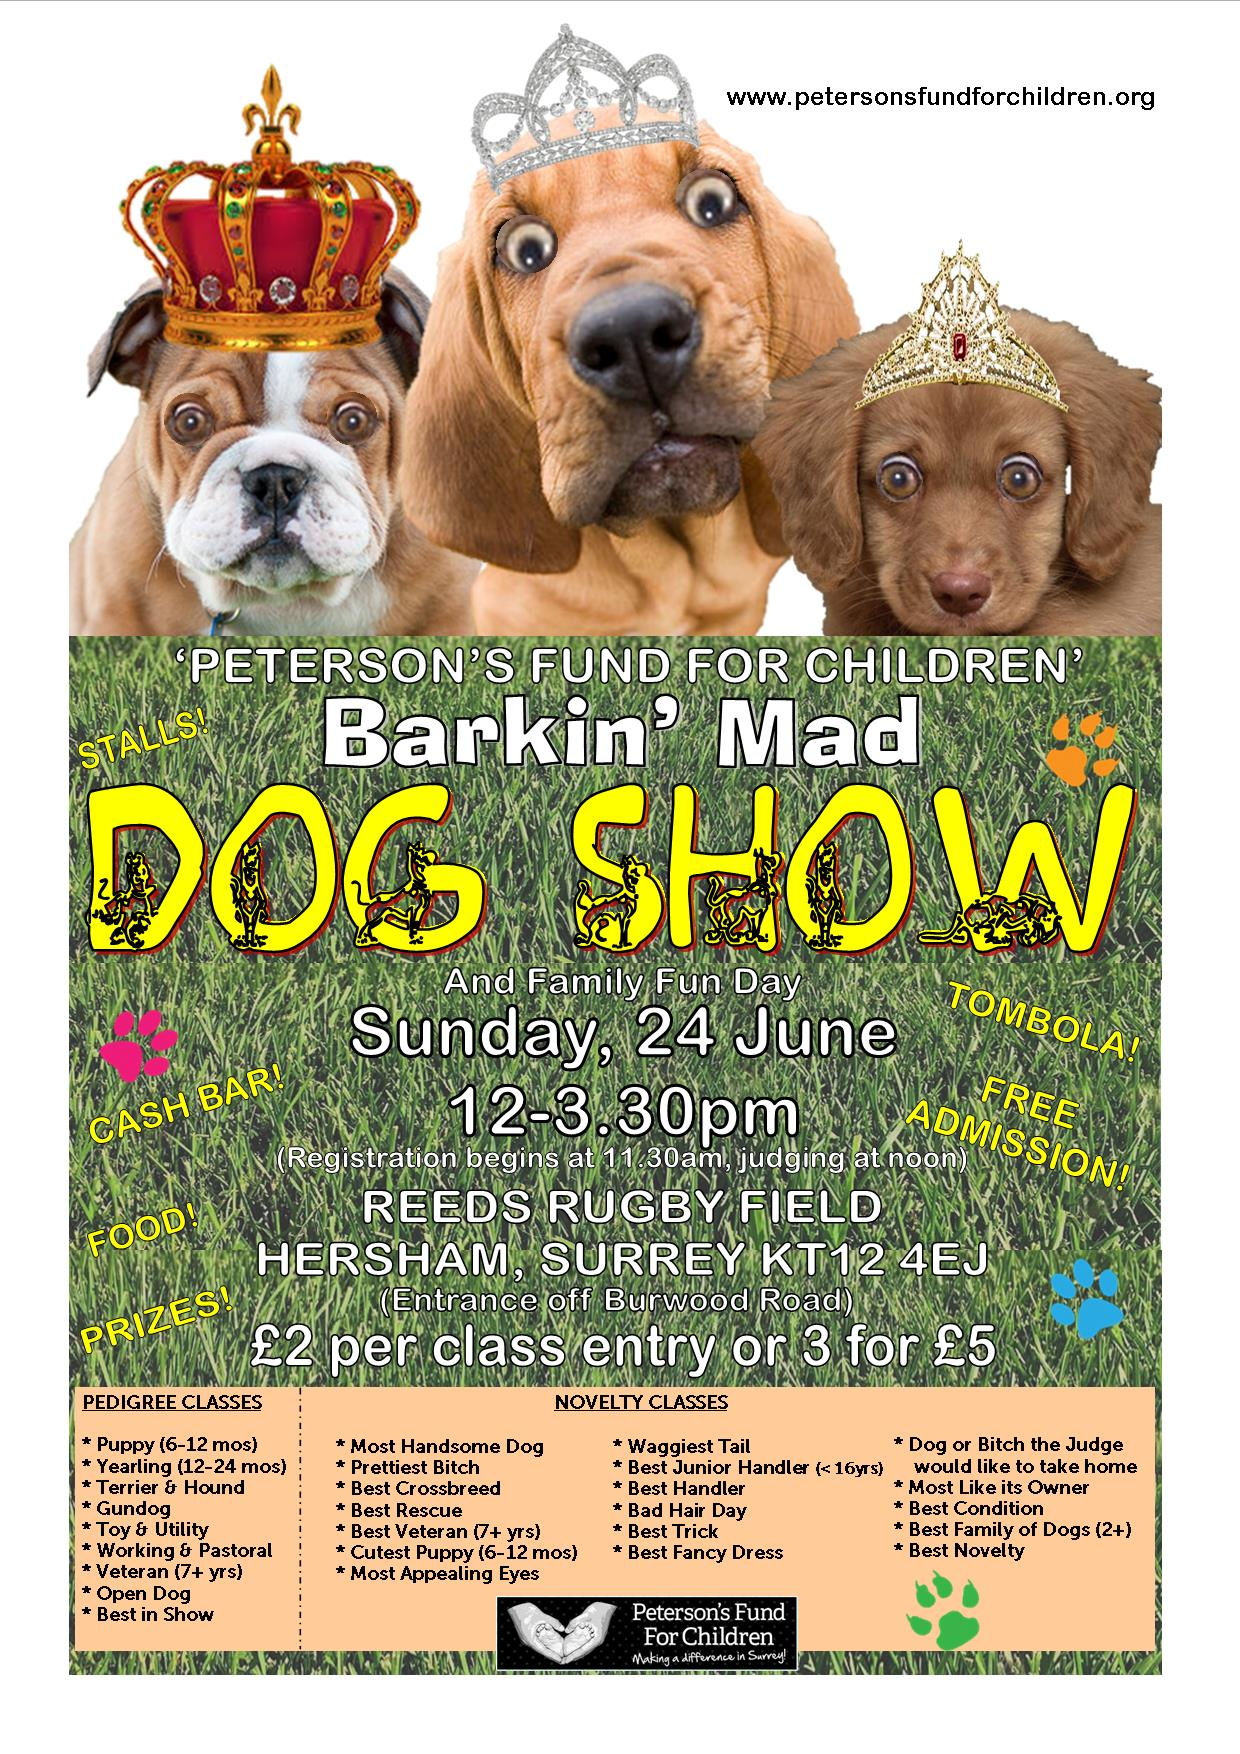 Peterson's Fund For Children Barkin' Mad Dog Show and Family Fun Day!